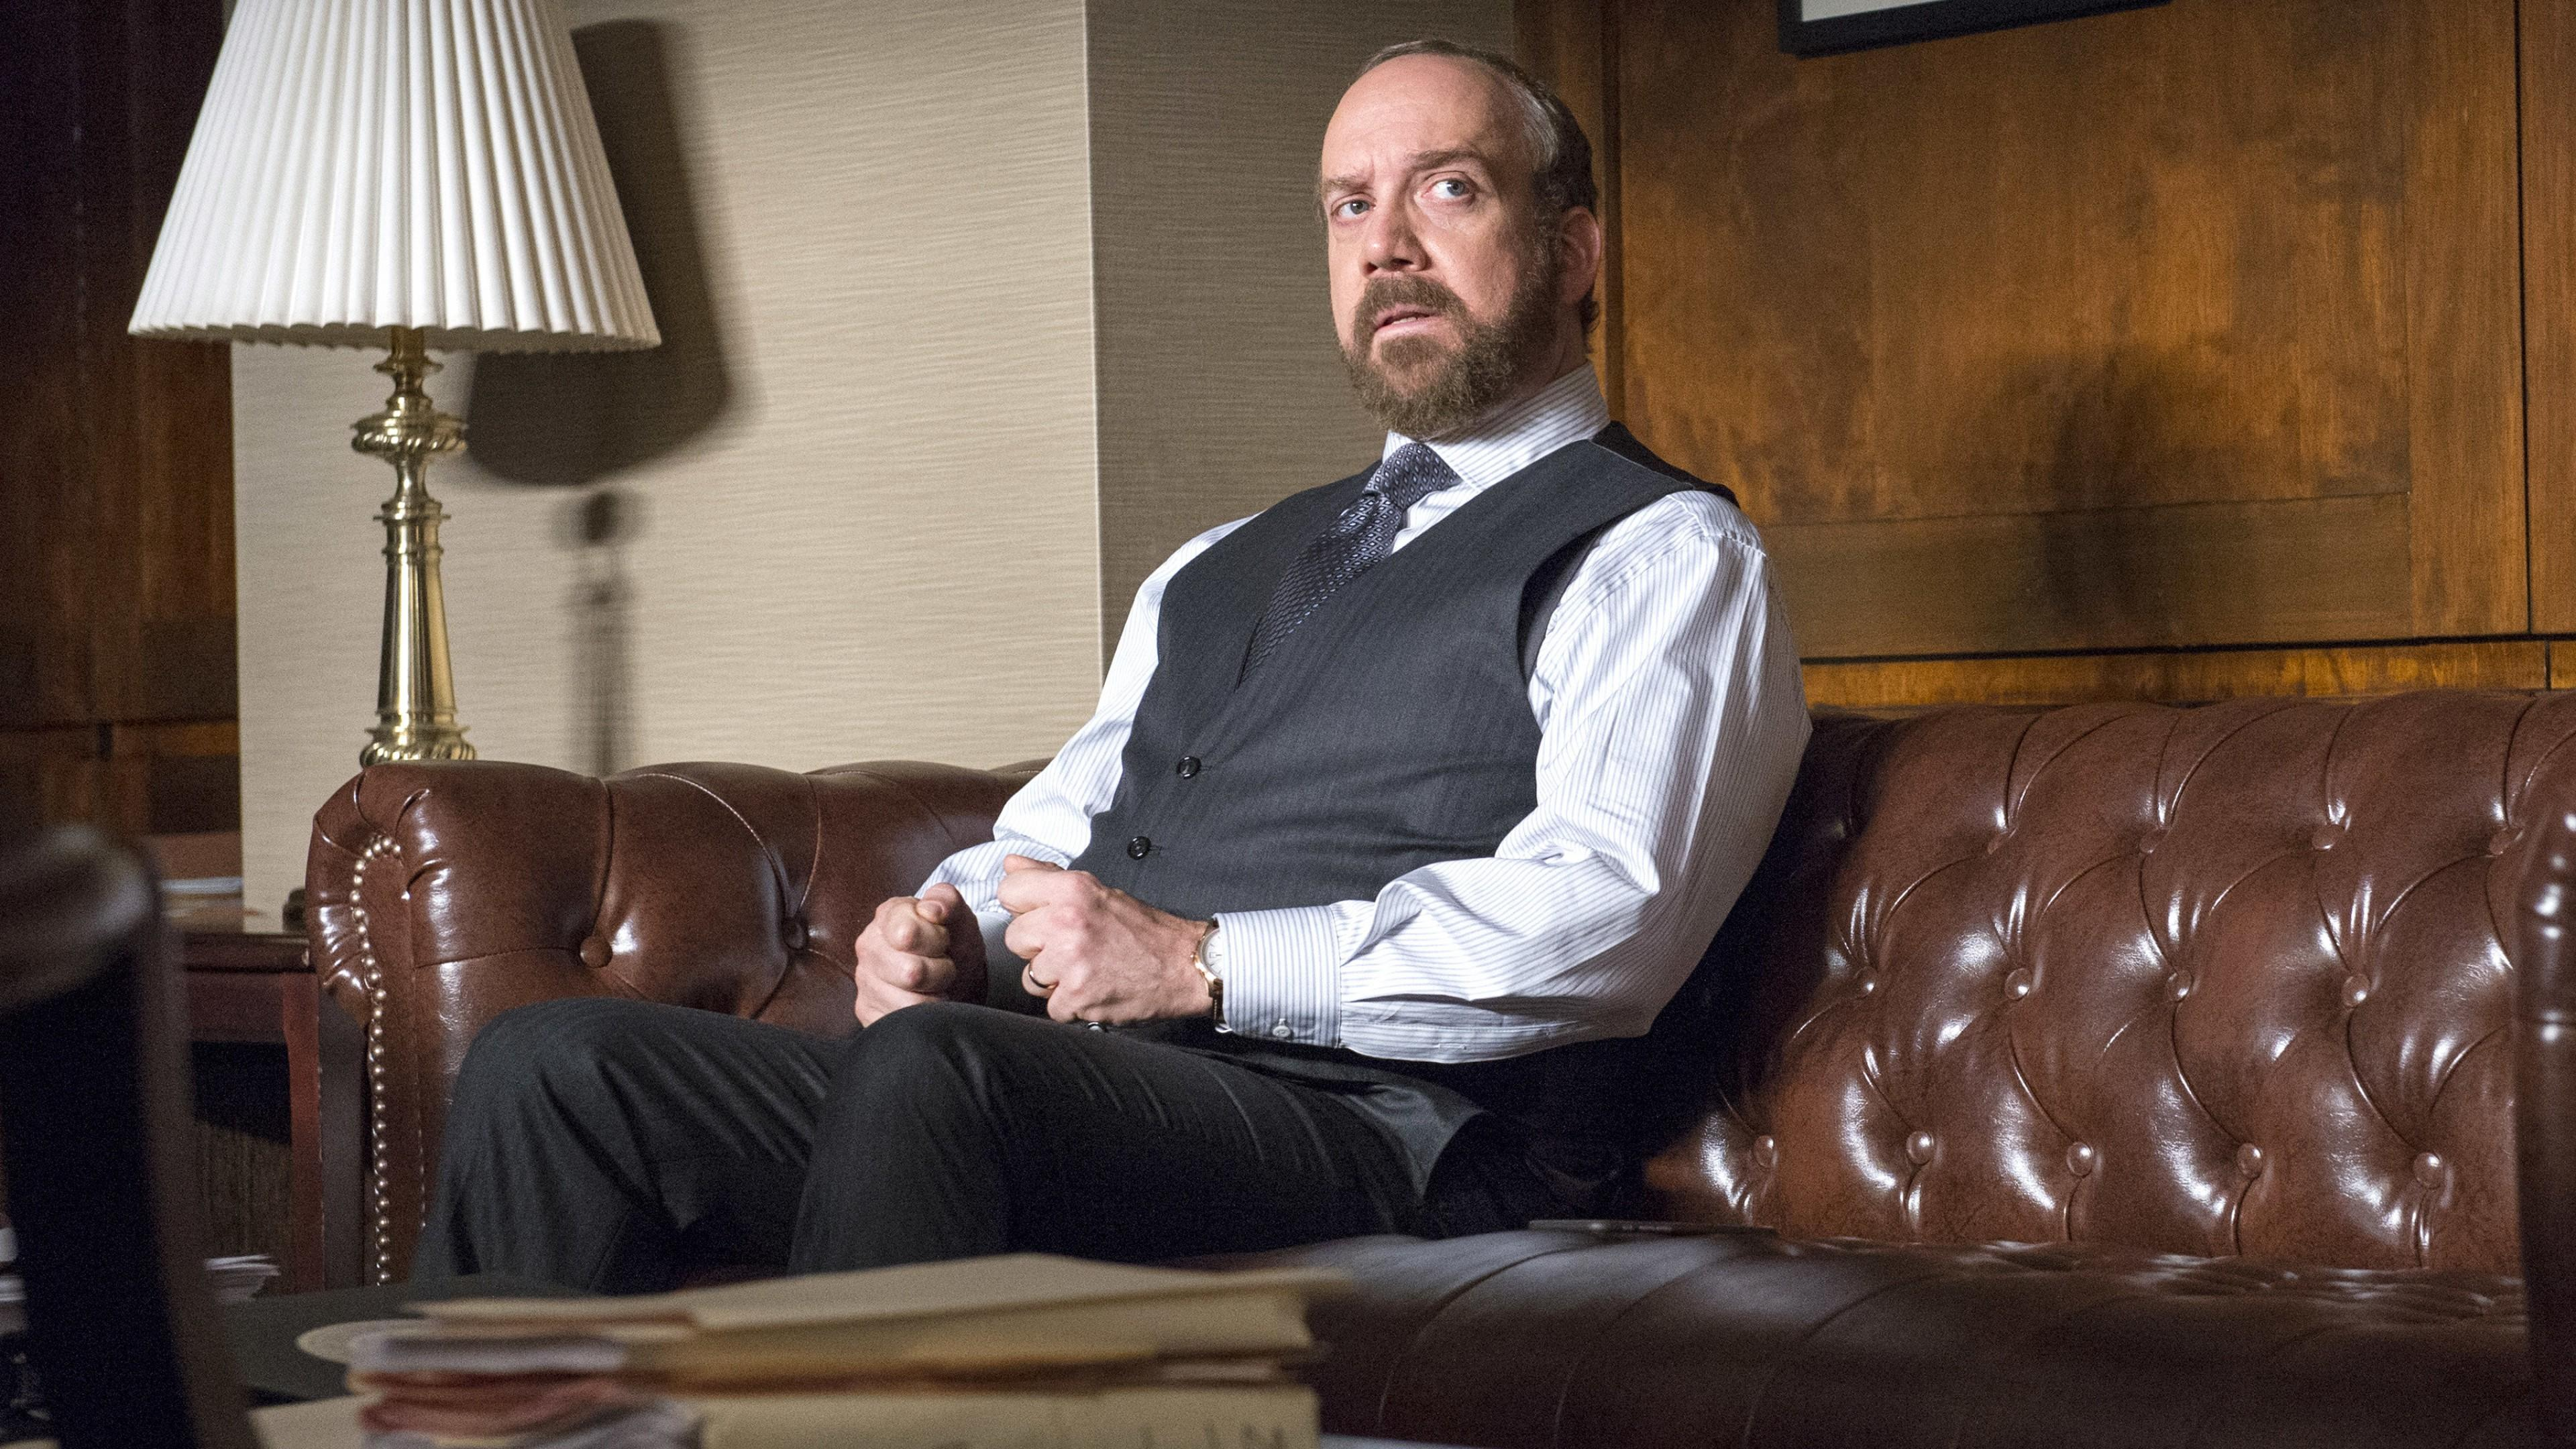 Wallpapers Billions, Paul Giamatti, Best TV Series, Movies